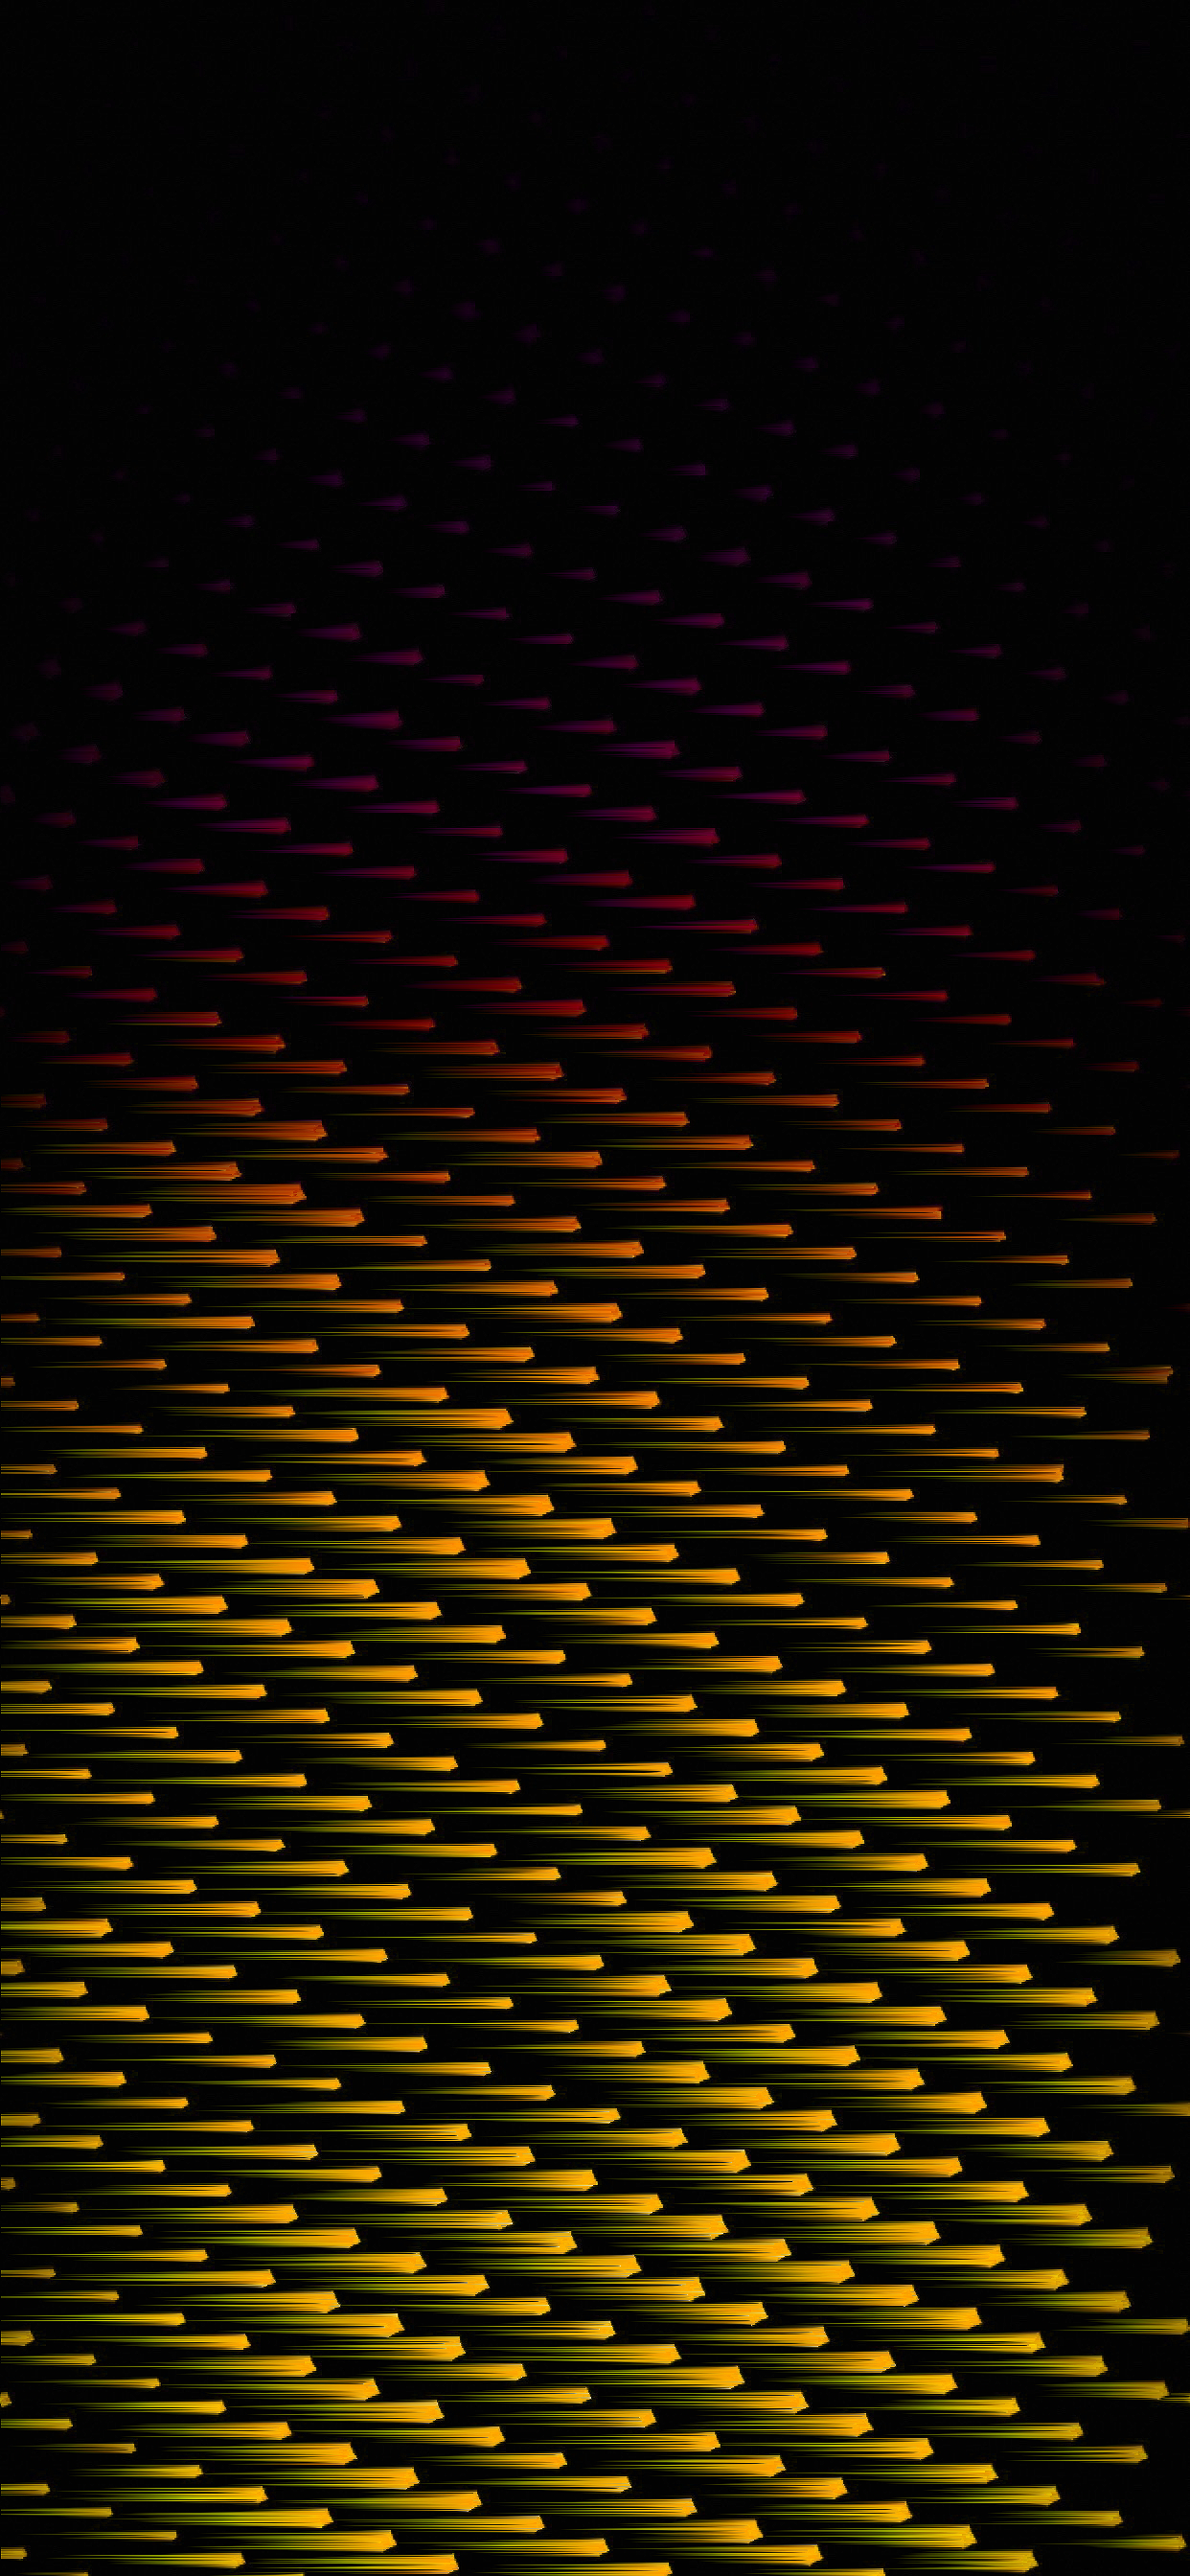 iPhone wallpaper texture colors yellow Fonds d'écran iPhone du 27/03/2019